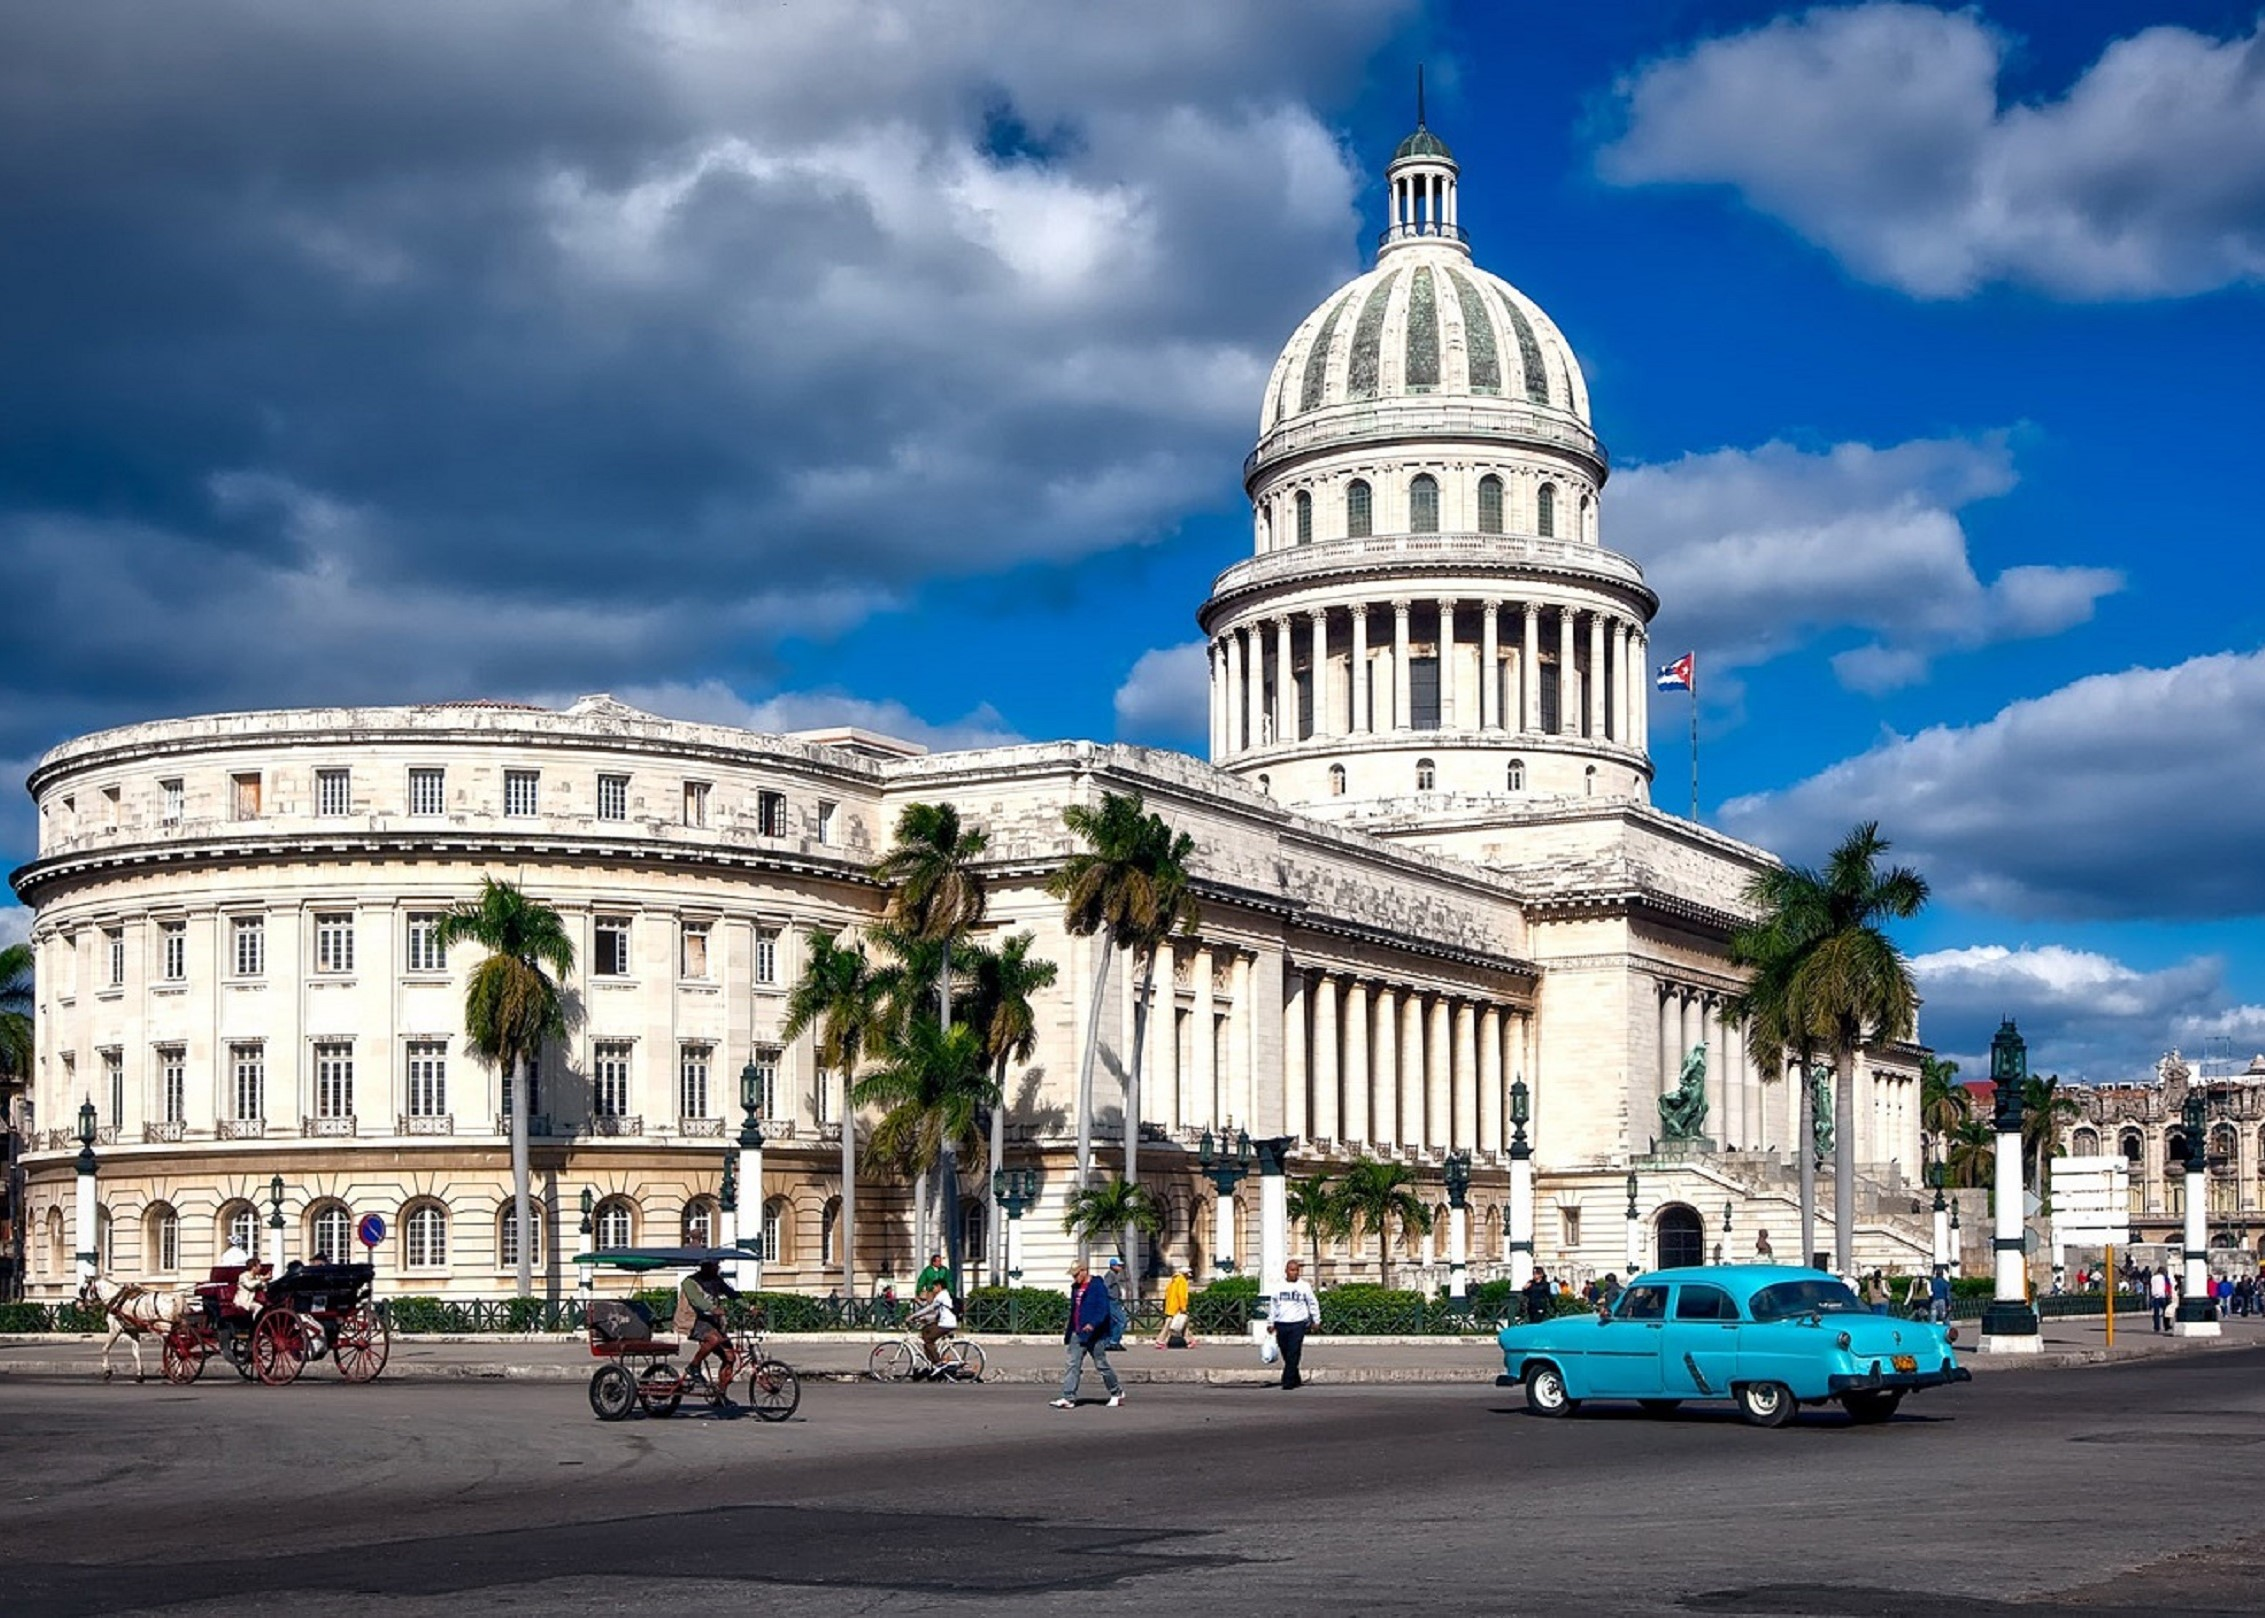 Looking Towards the Future: A New Cuban Constitution